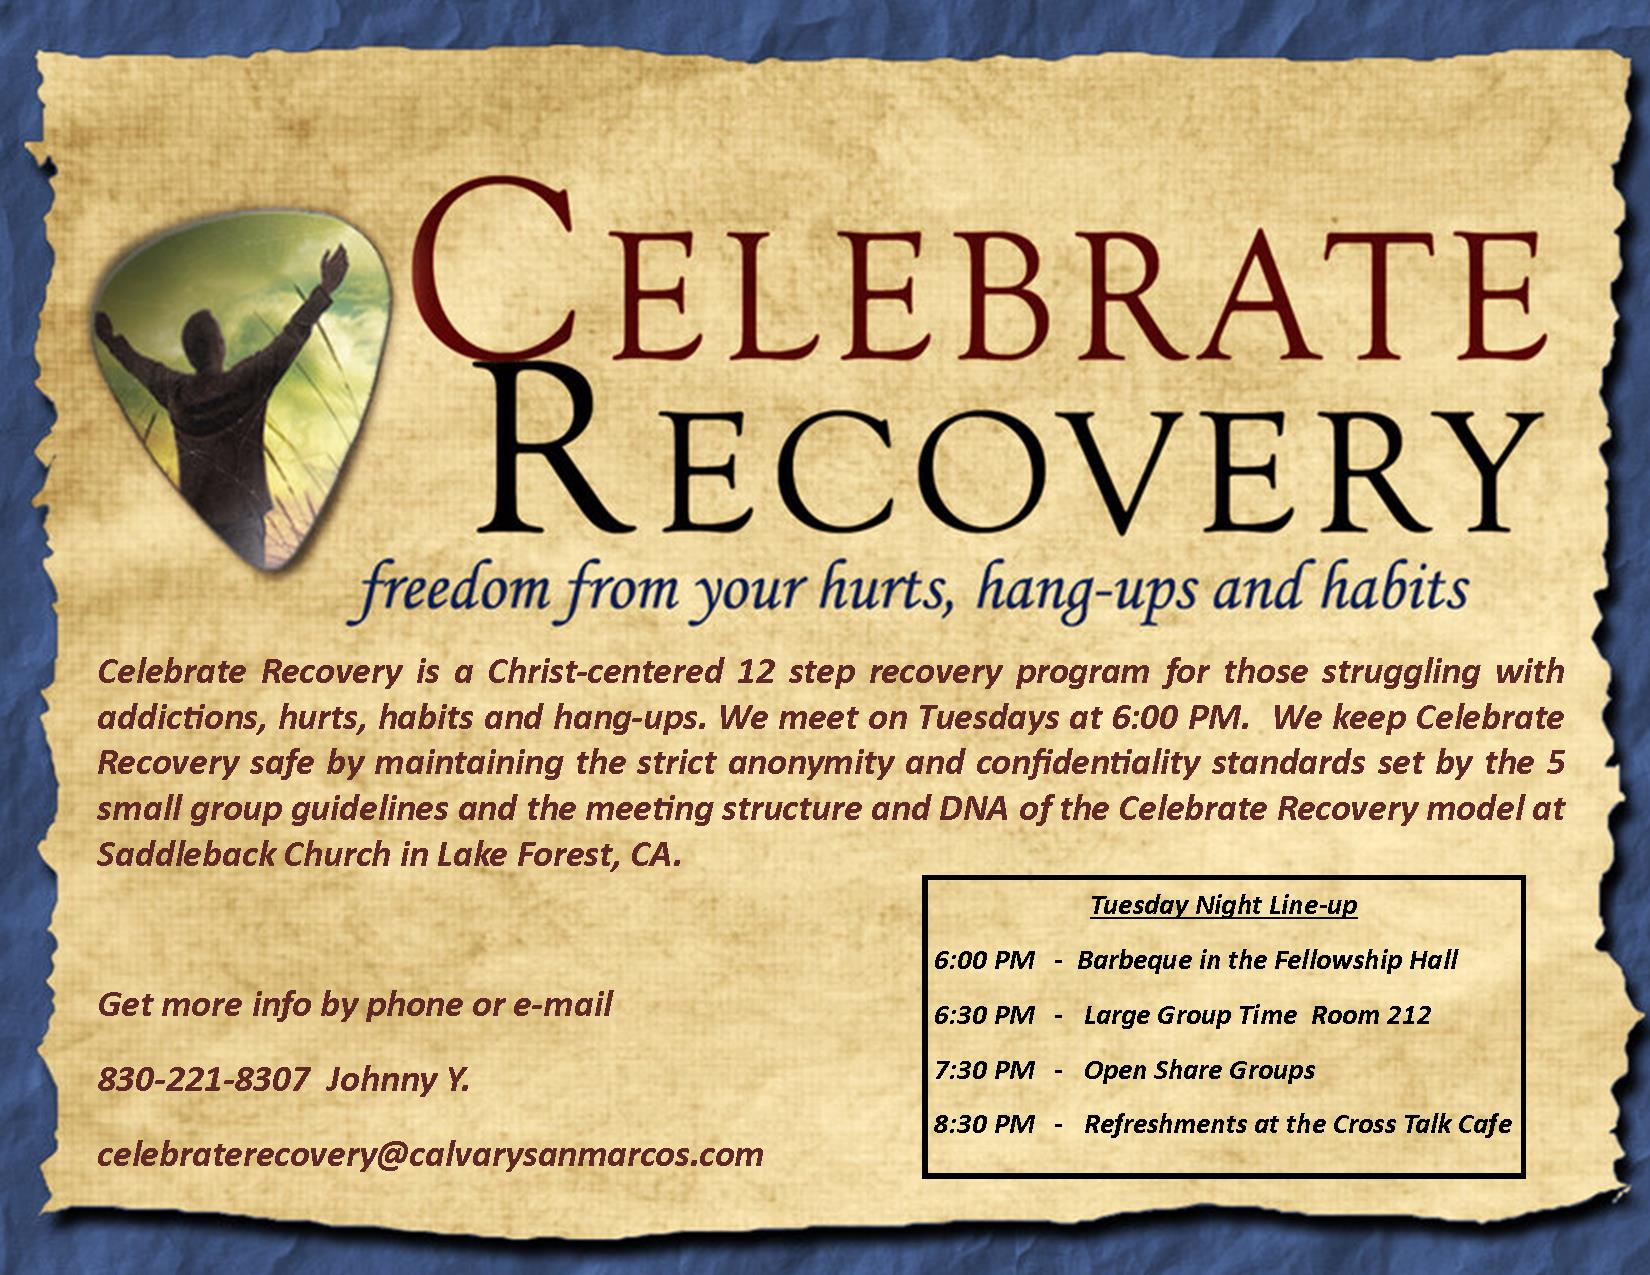 Contact the church @ 512-353-8540 or e-mail Celebrate Recovery